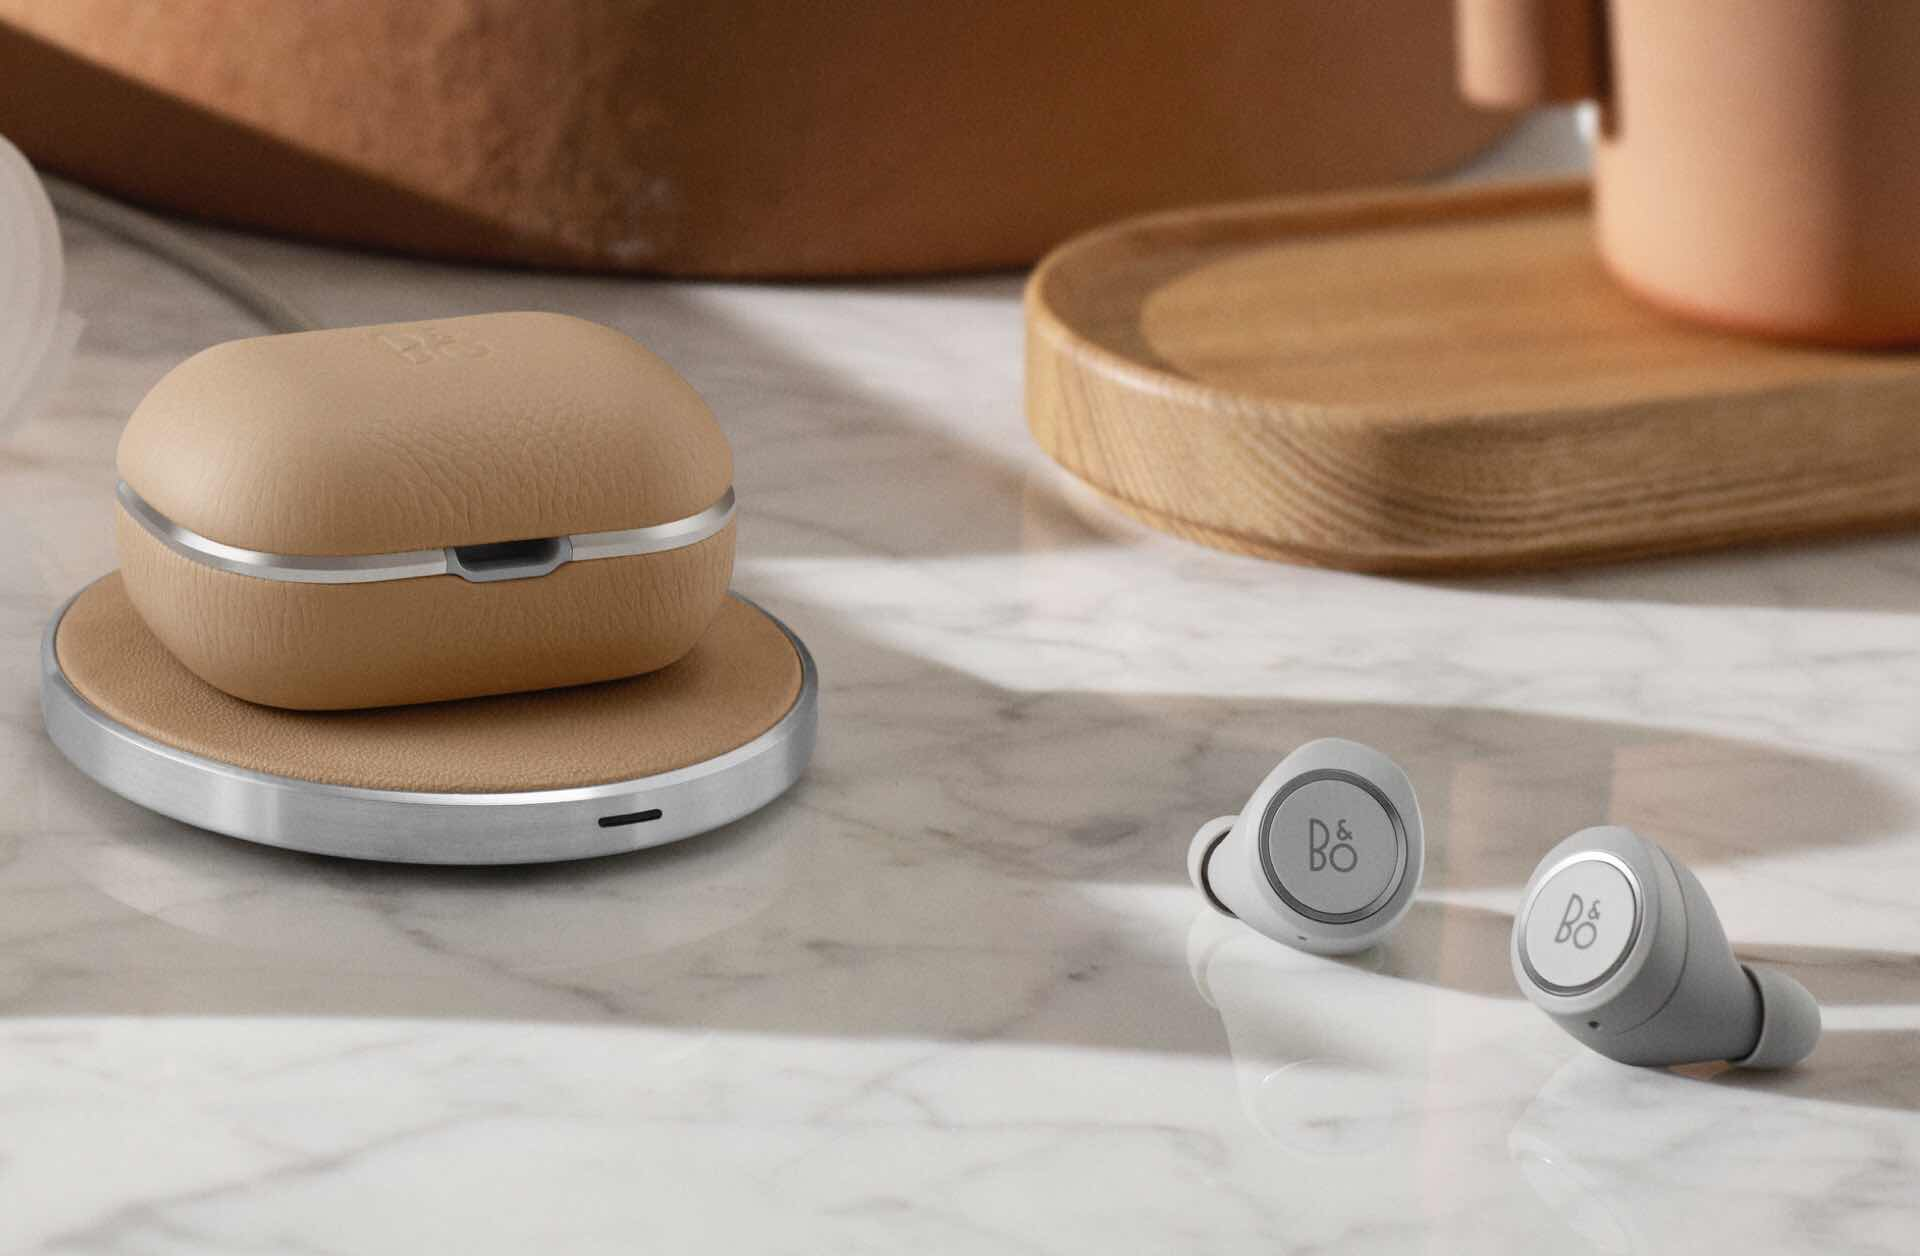 bang-and-olufsen-beoplay-e8-2-0-true-wireless-earphones